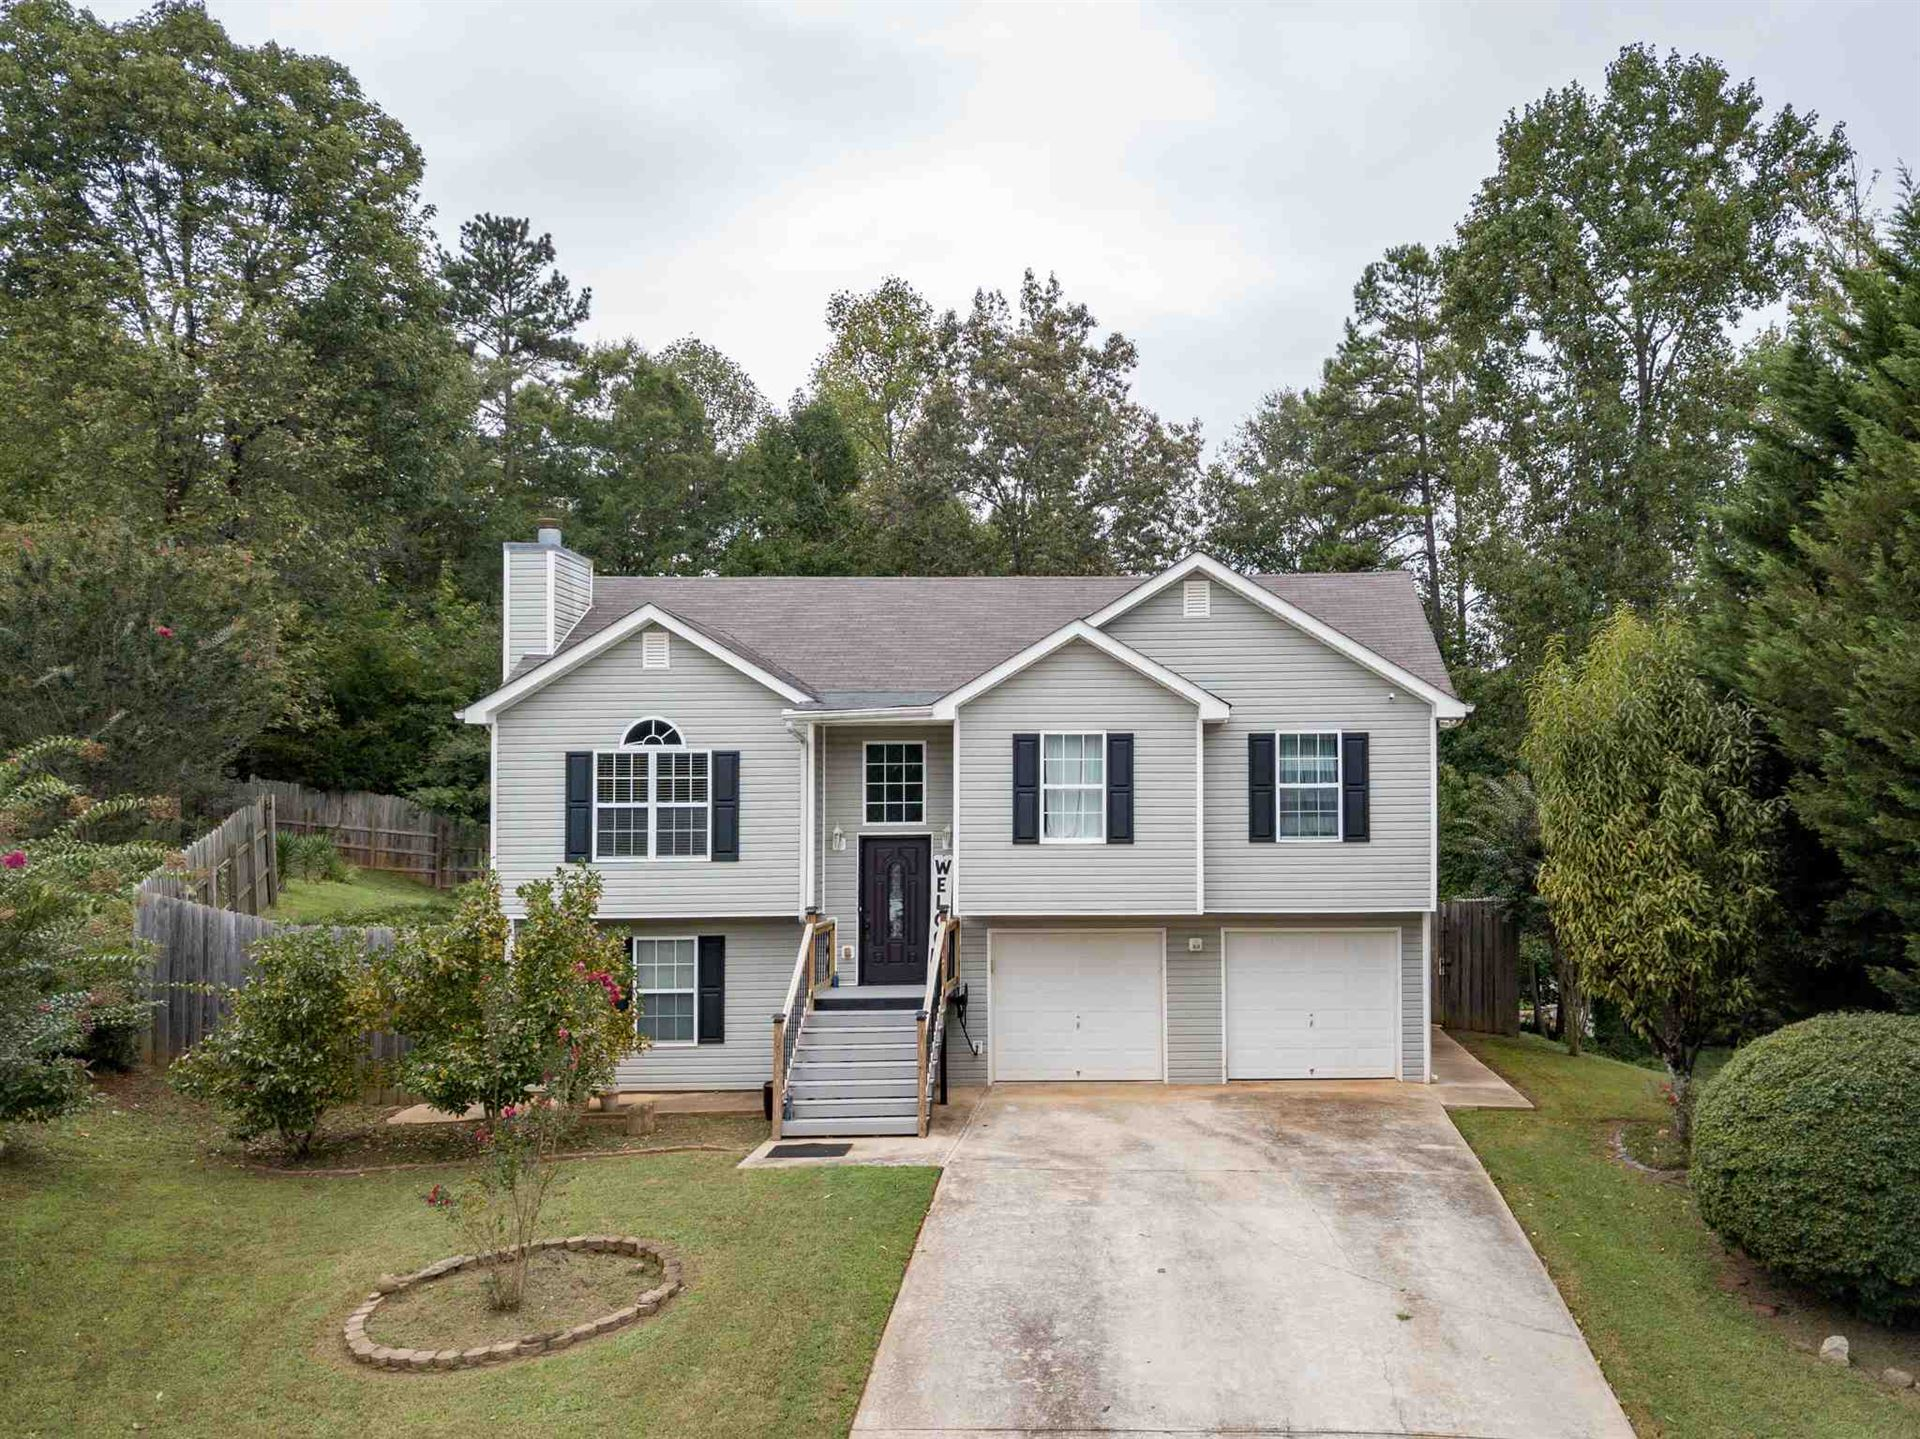 3811 Chase Dr, Gainesville, GA 30507 - MLS#: 8858780